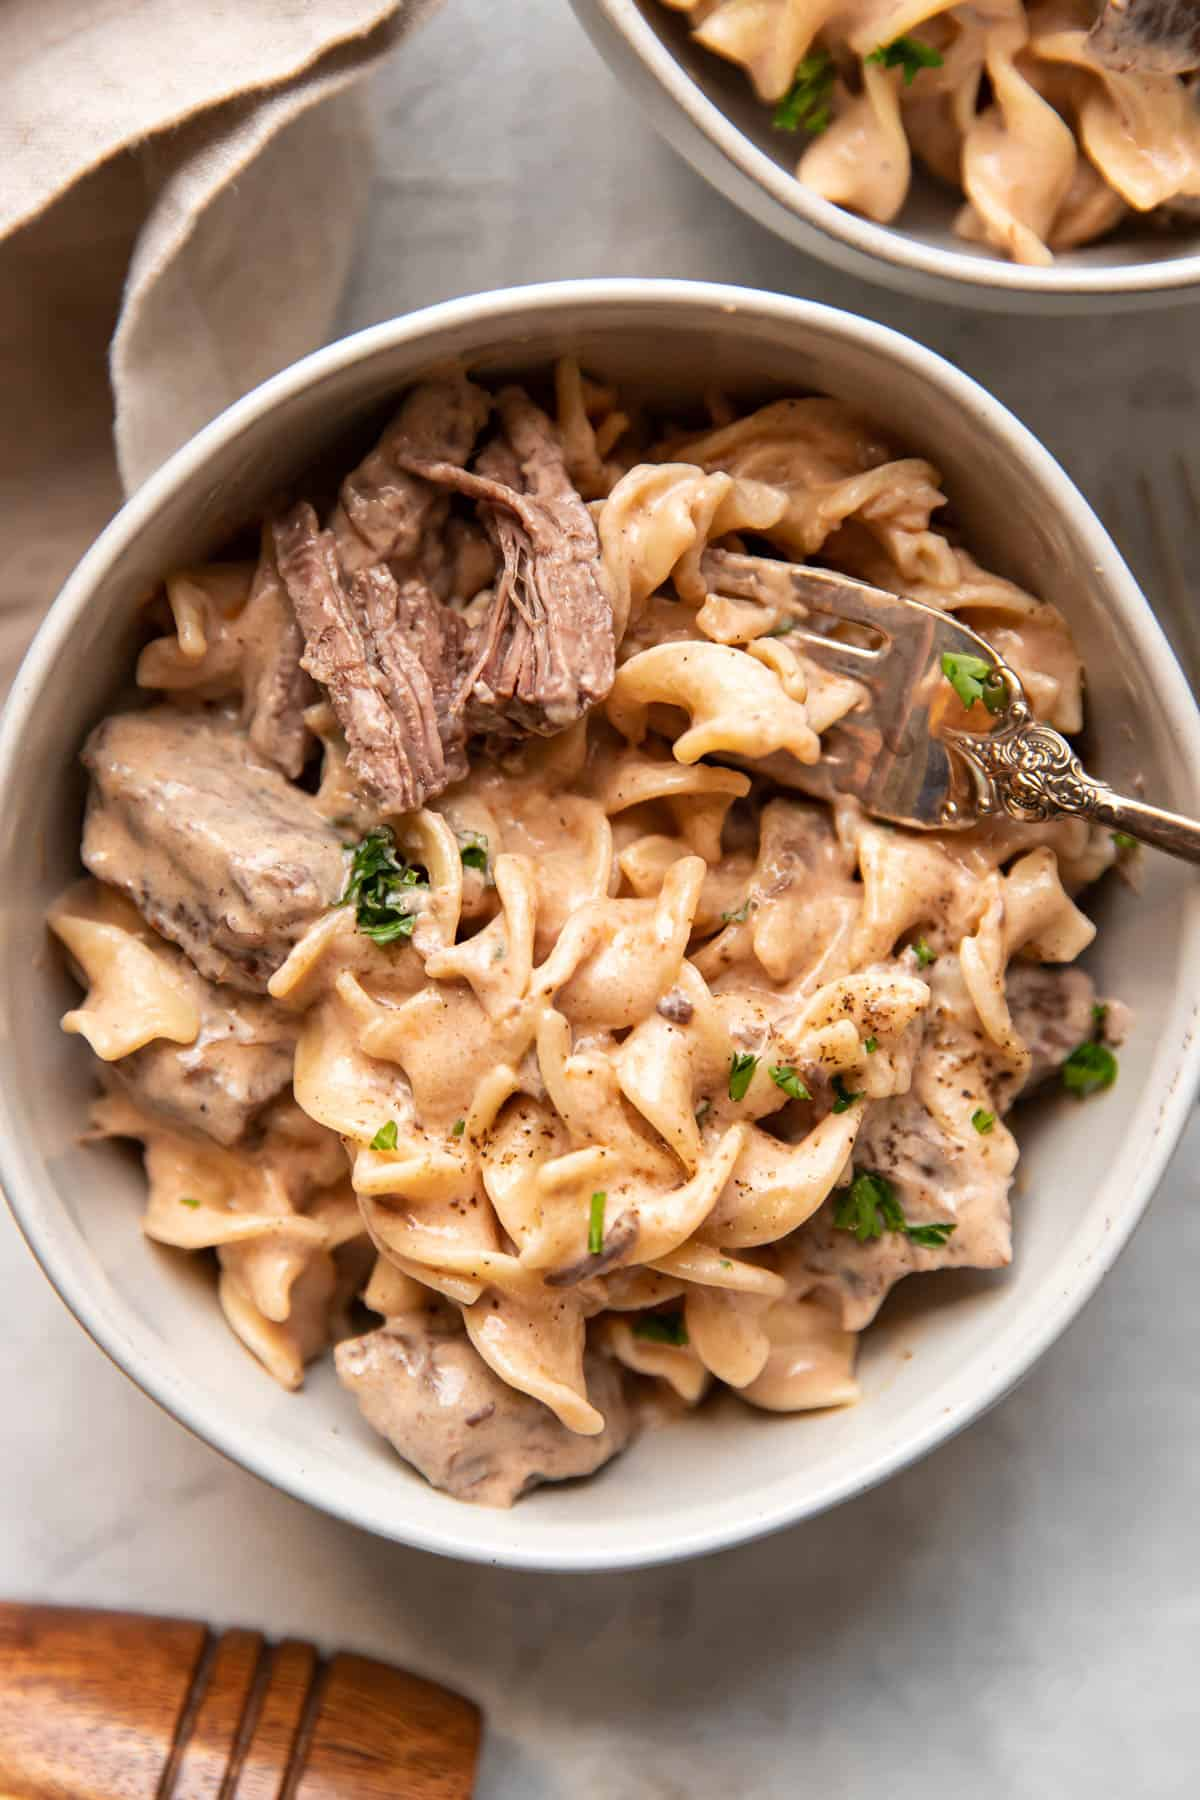 beef stroganoff with sour cream, egg noodle and chuck roast meat.